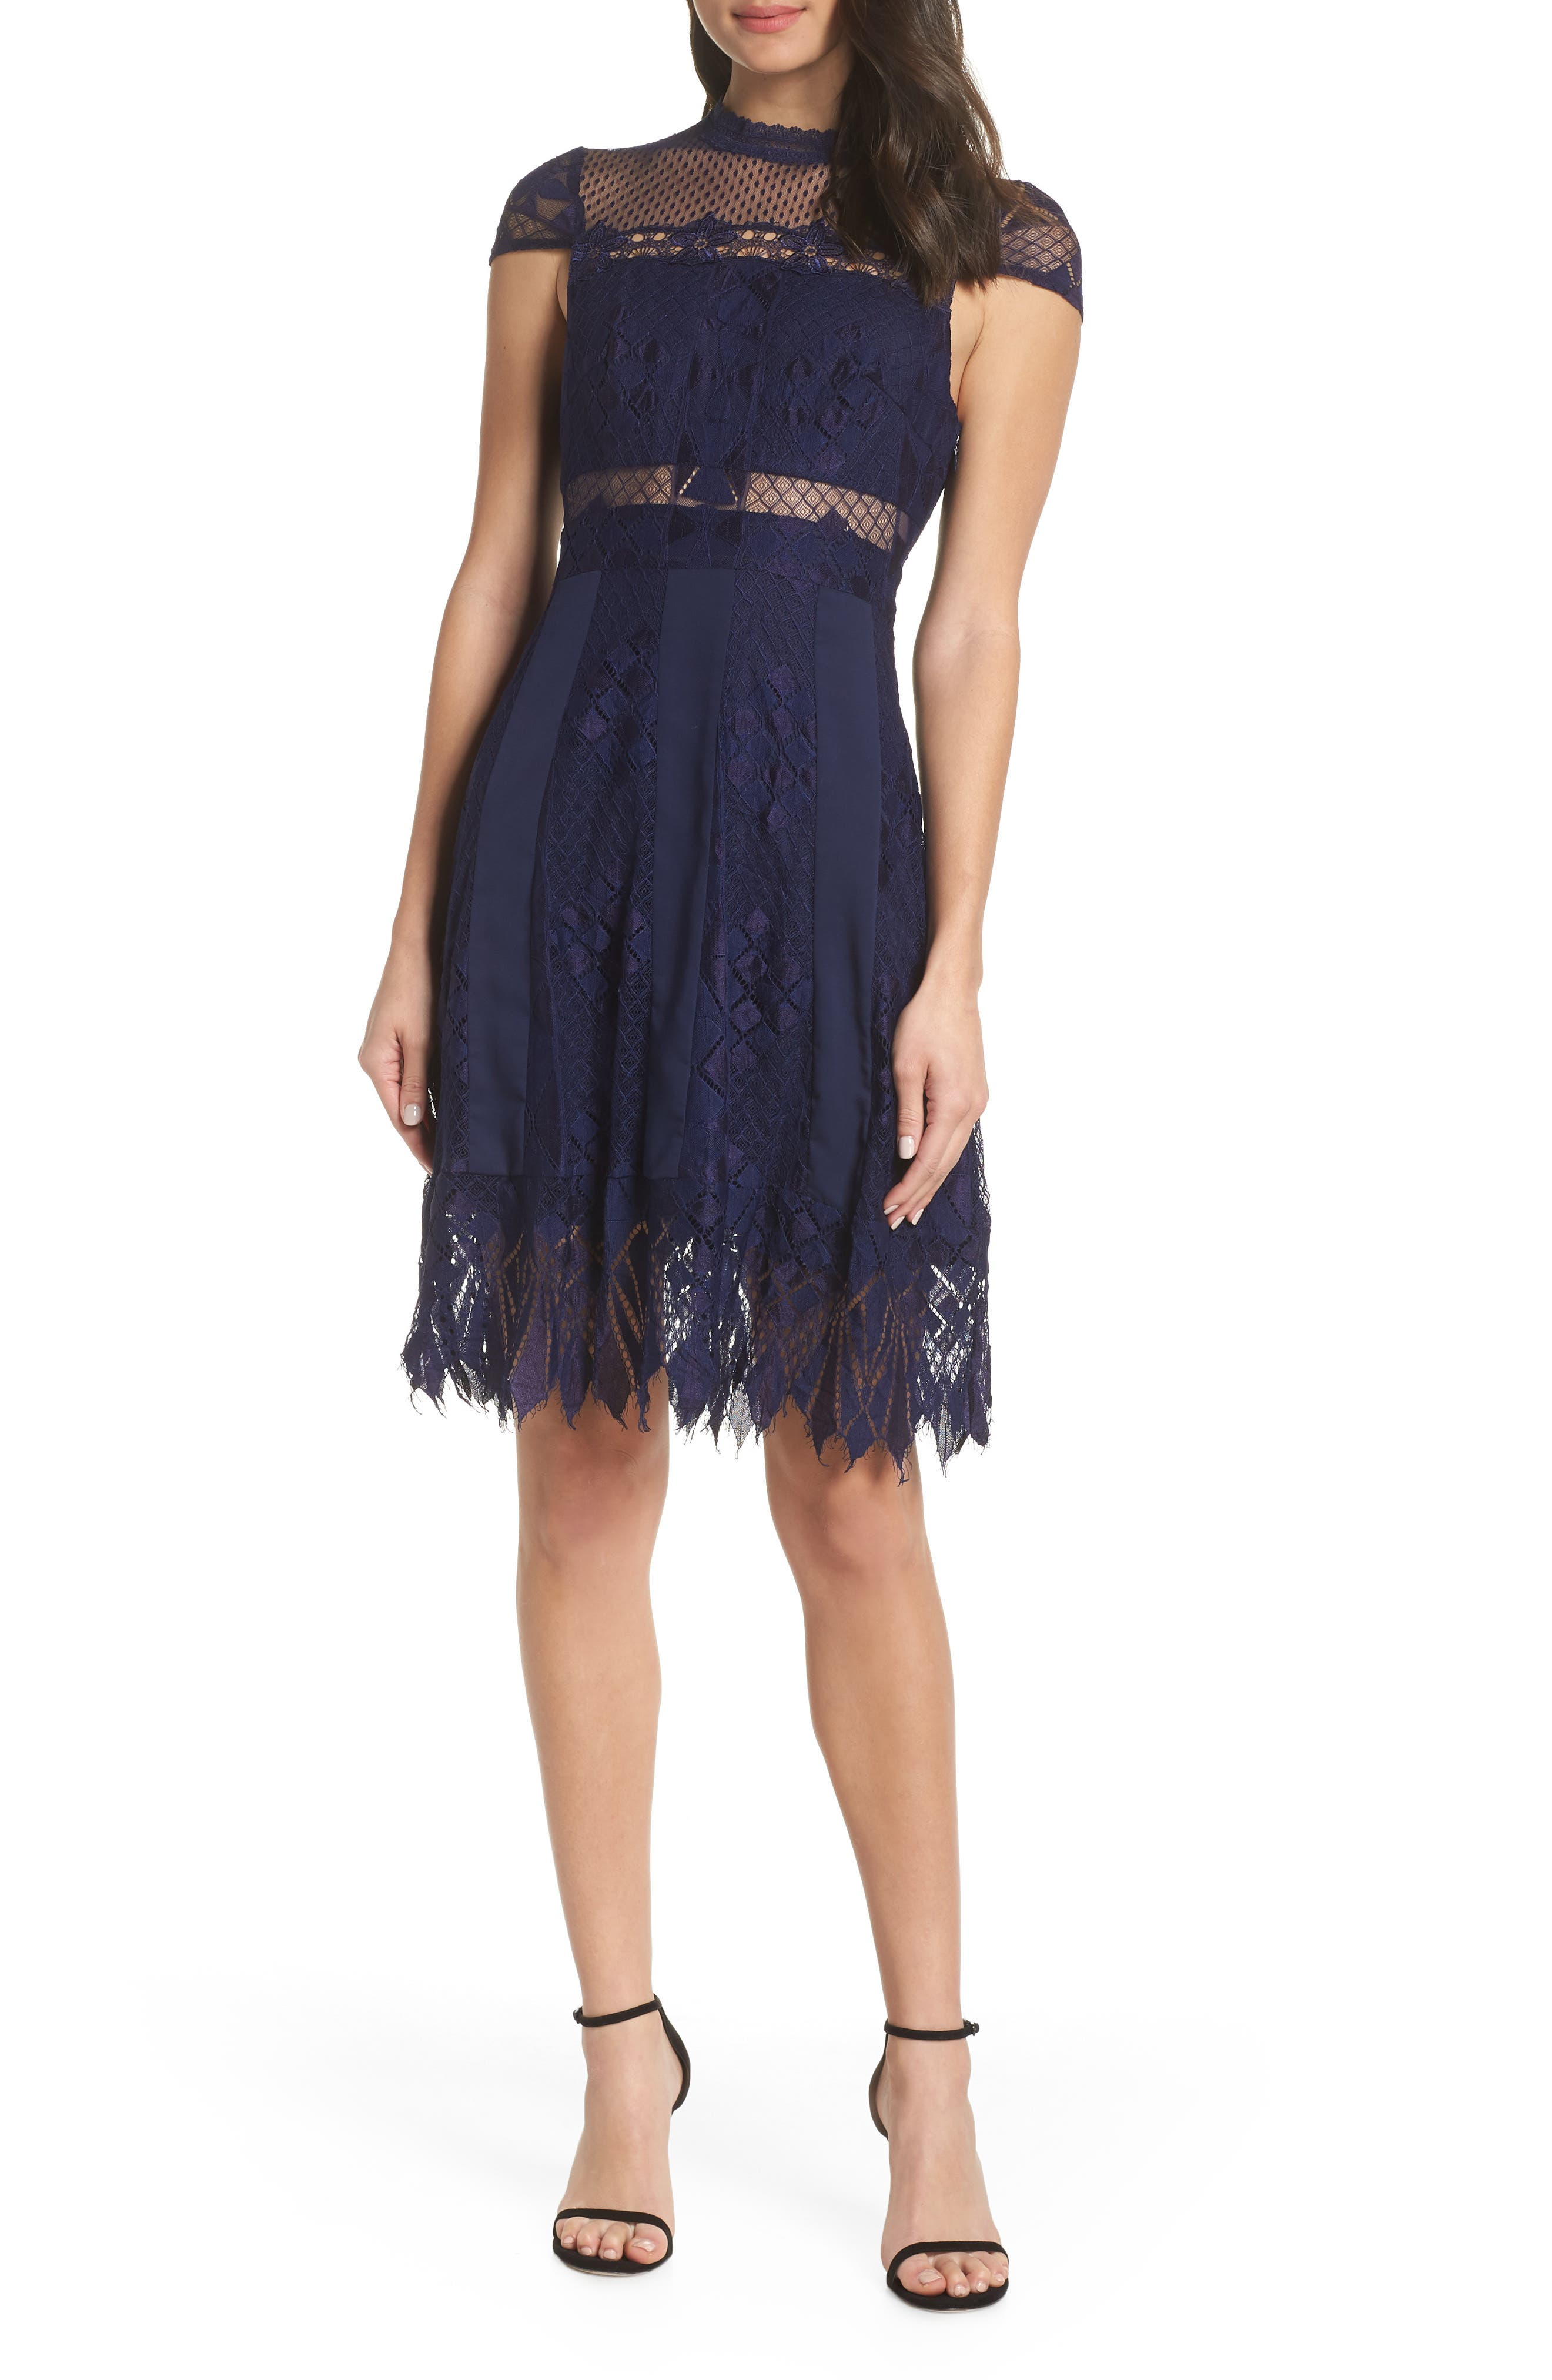 FOXIEDOX Bravo Zulu Lace Fit & Flare Cocktail Dress in Navy